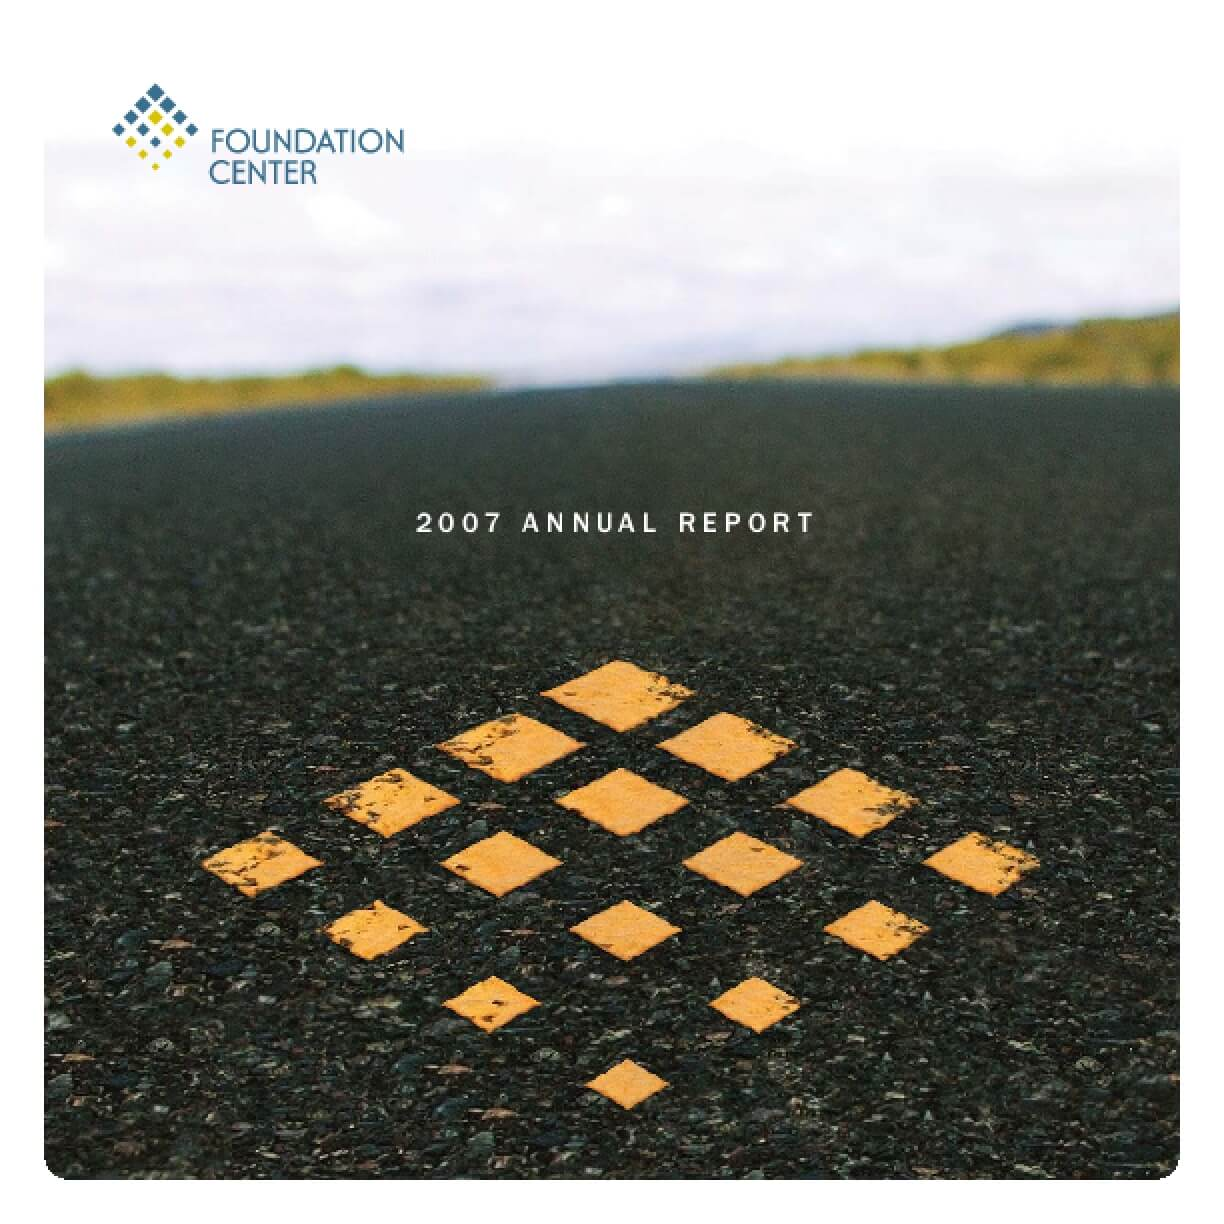 The Foundation Center 2007 Annual Report